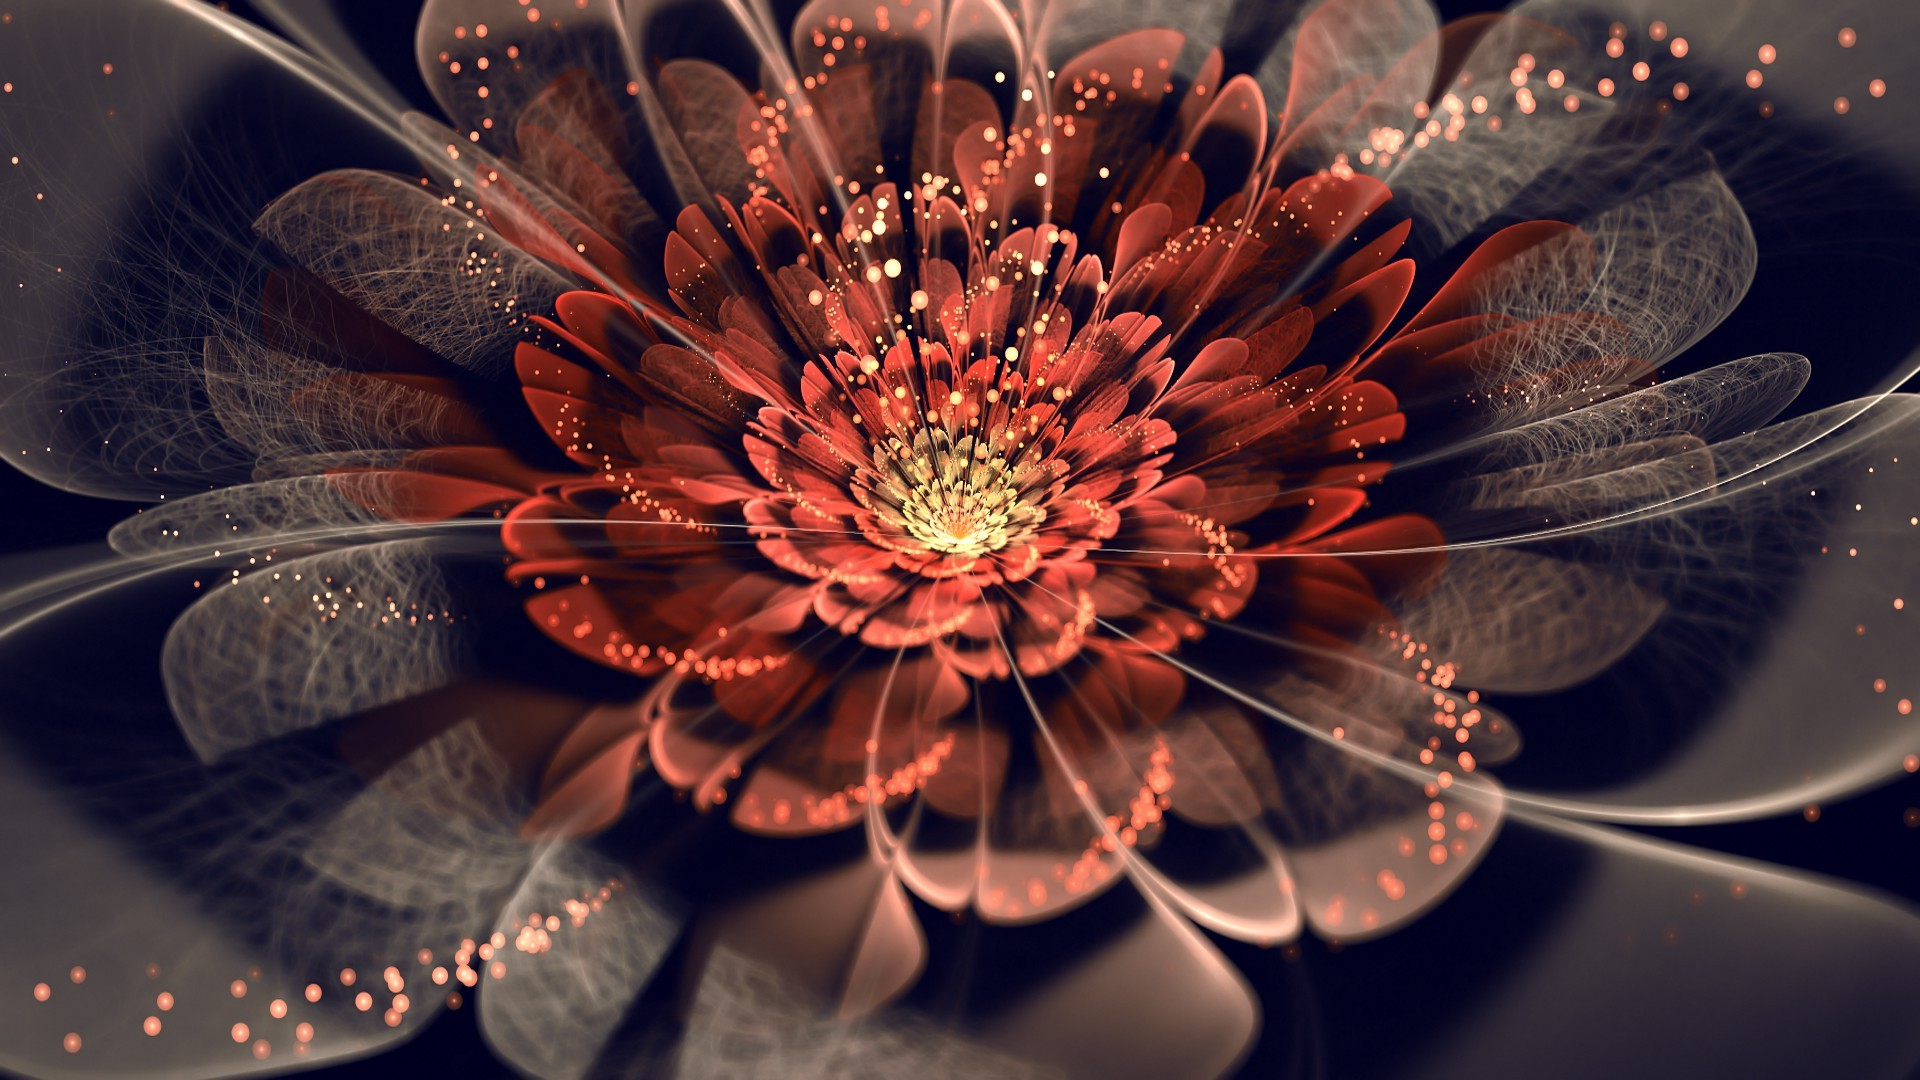 3d Fractal Wallpapers Hd Digital Art Abstract Fractal Fractal Flowers Wallpapers